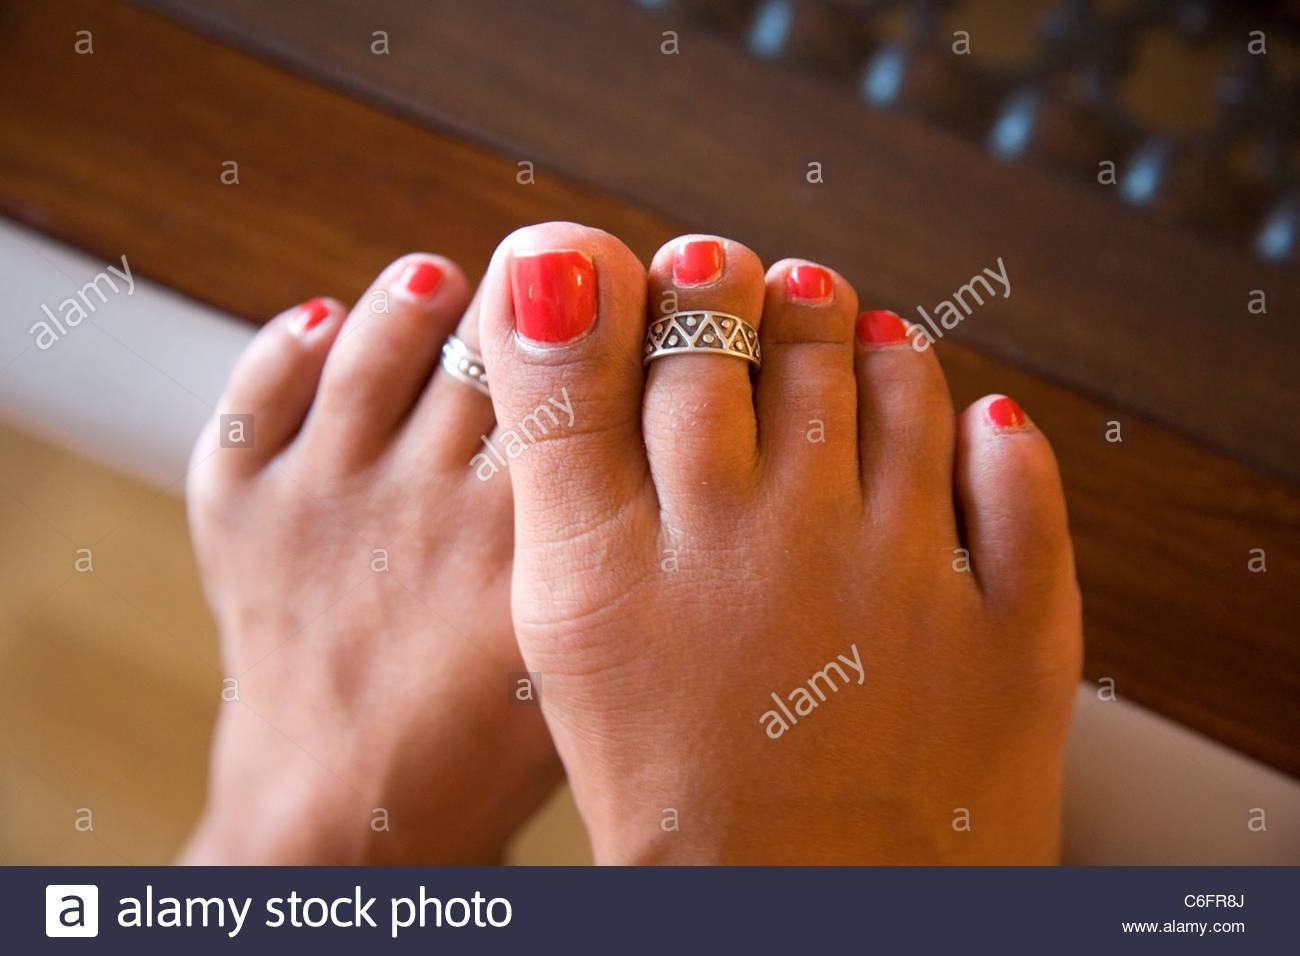 Toe Ring Stock Photos & Toe Ring Stock Images – Alamy For Most Recent Big Toe Rings (View 8 of 15)